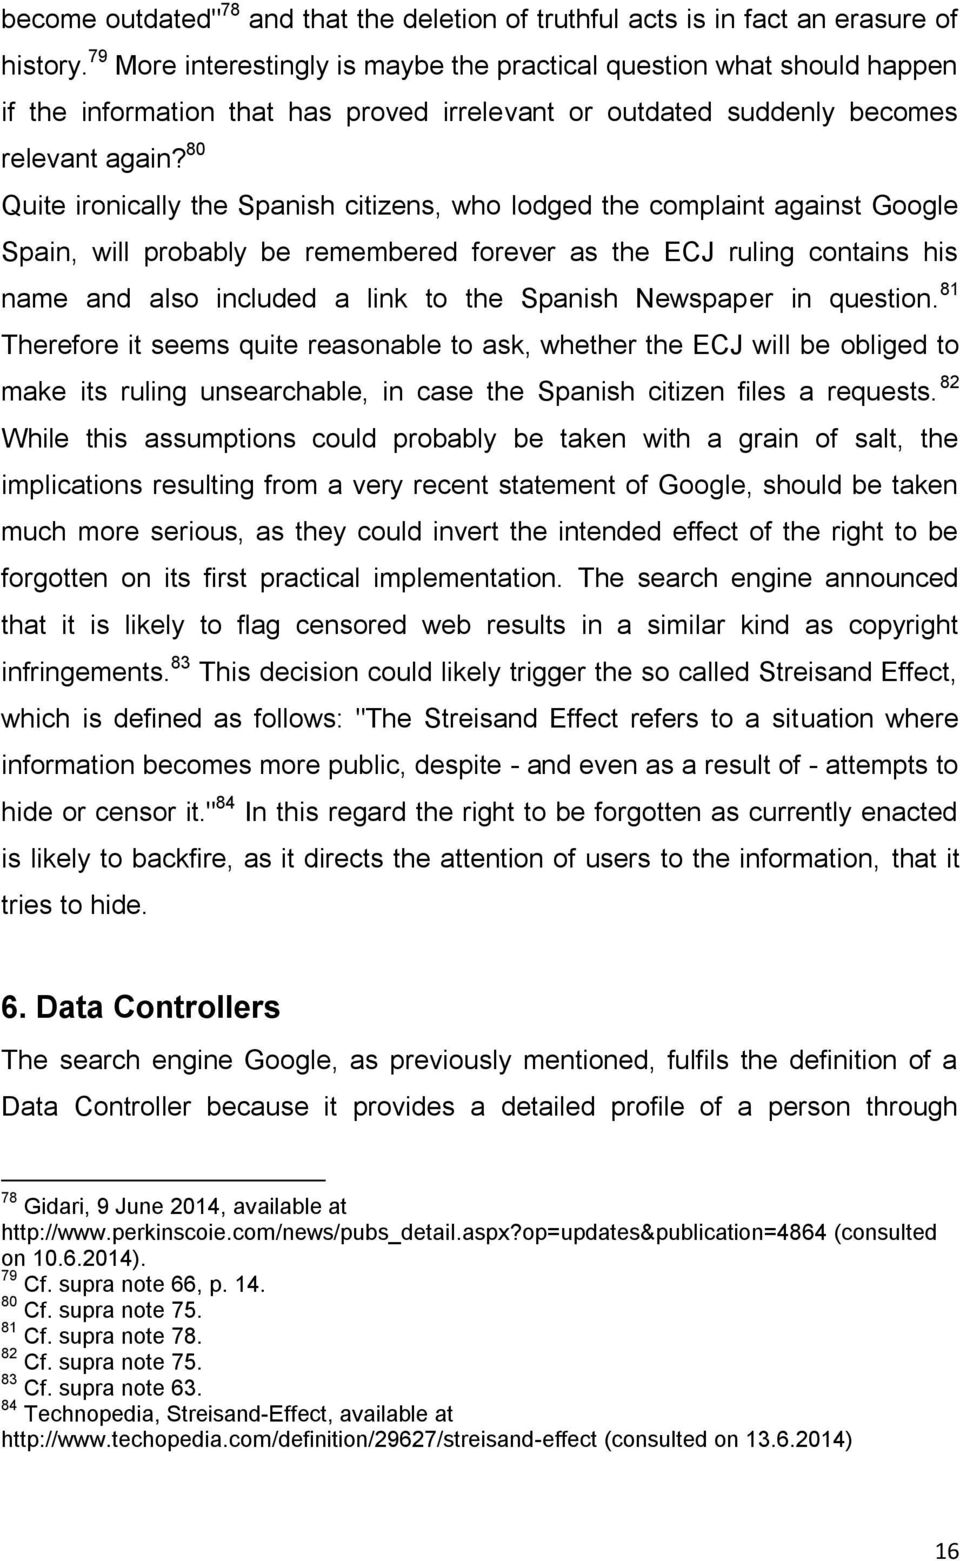 80 Quite ironically the Spanish citizens, who lodged the complaint against Google Spain, will probably be remembered forever as the ECJ ruling contains his name and also included a link to the